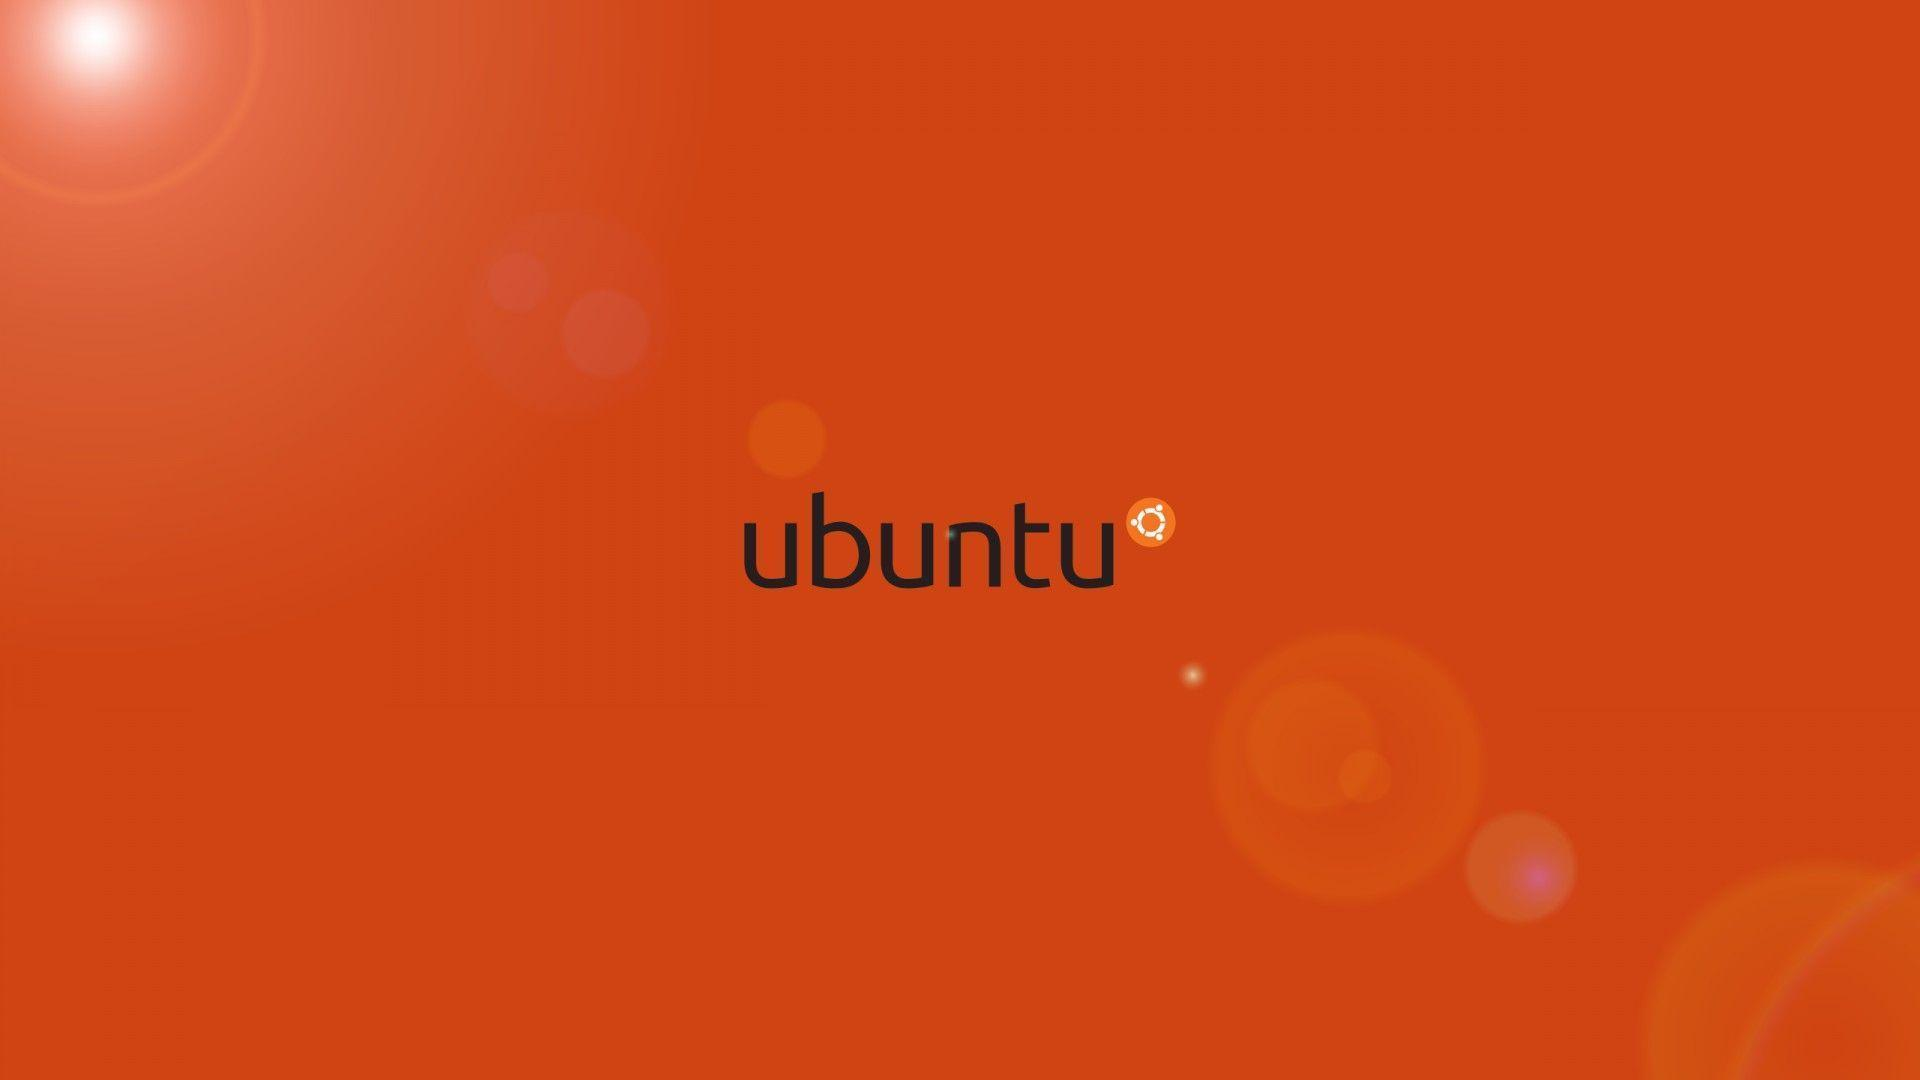 Ubuntu Wallpapers Location 1920x1080